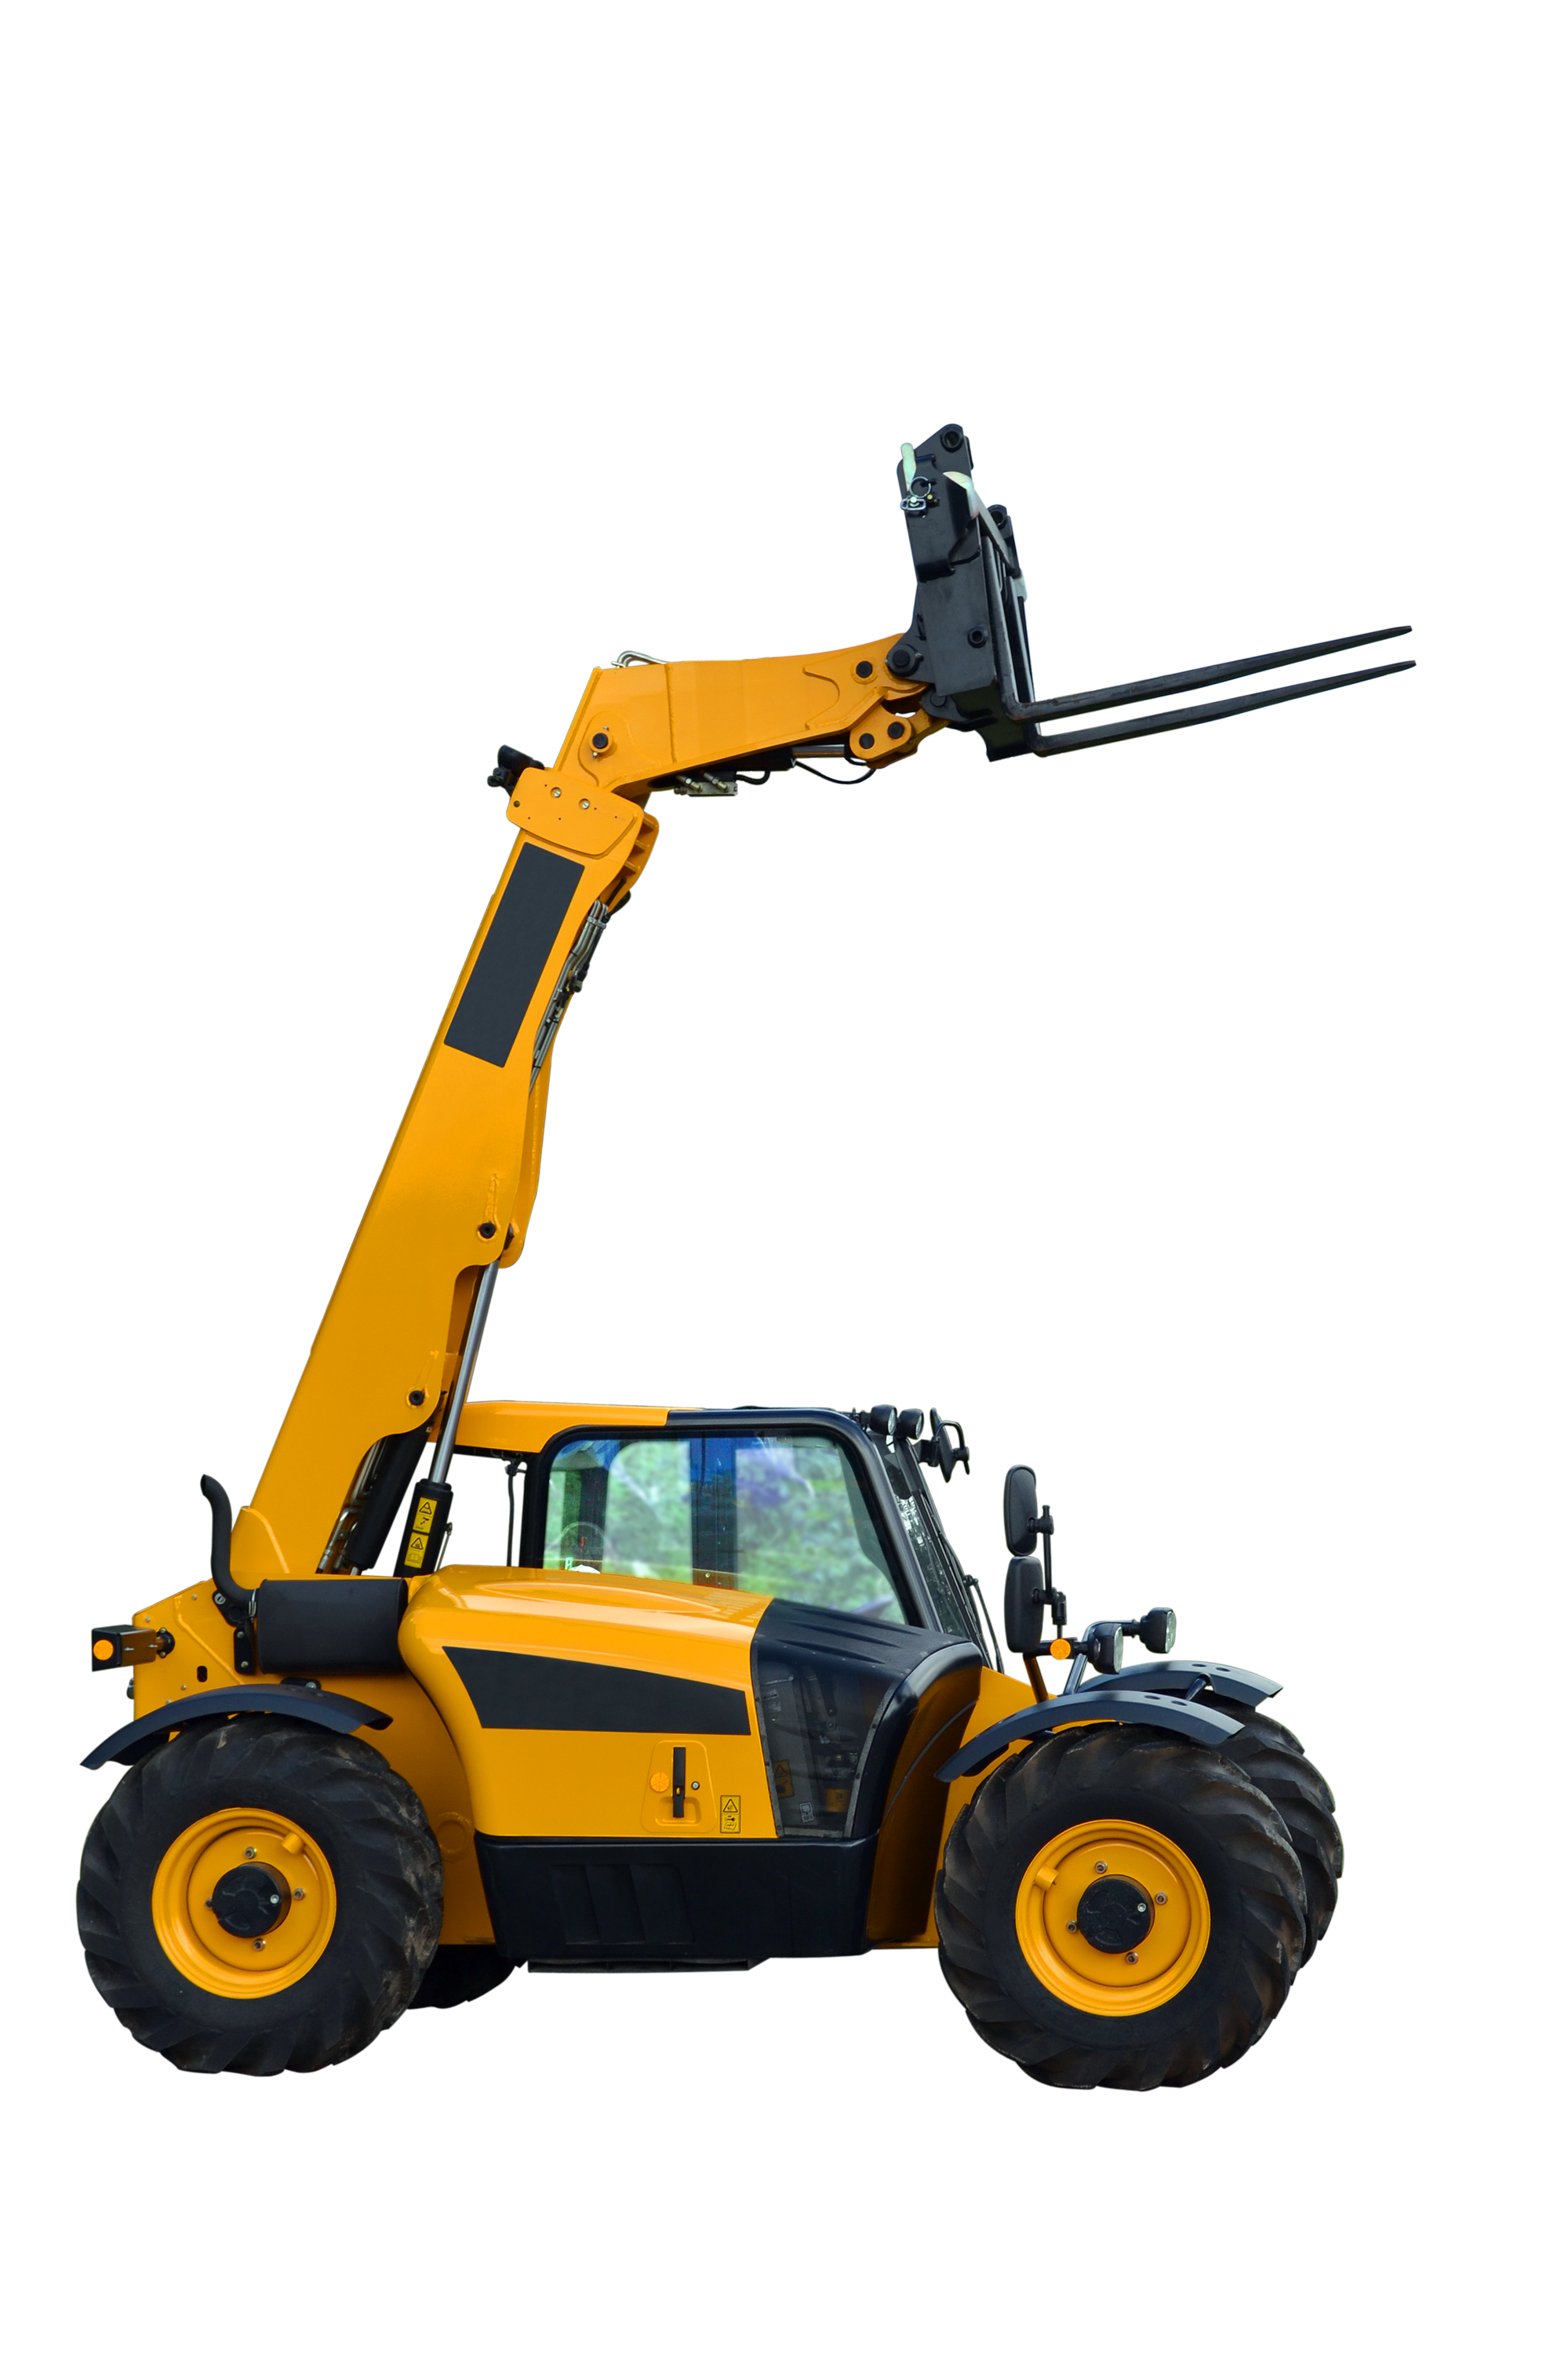 Telescopic handler, Agricultural, Machinery, Working, Work, HQ Photo